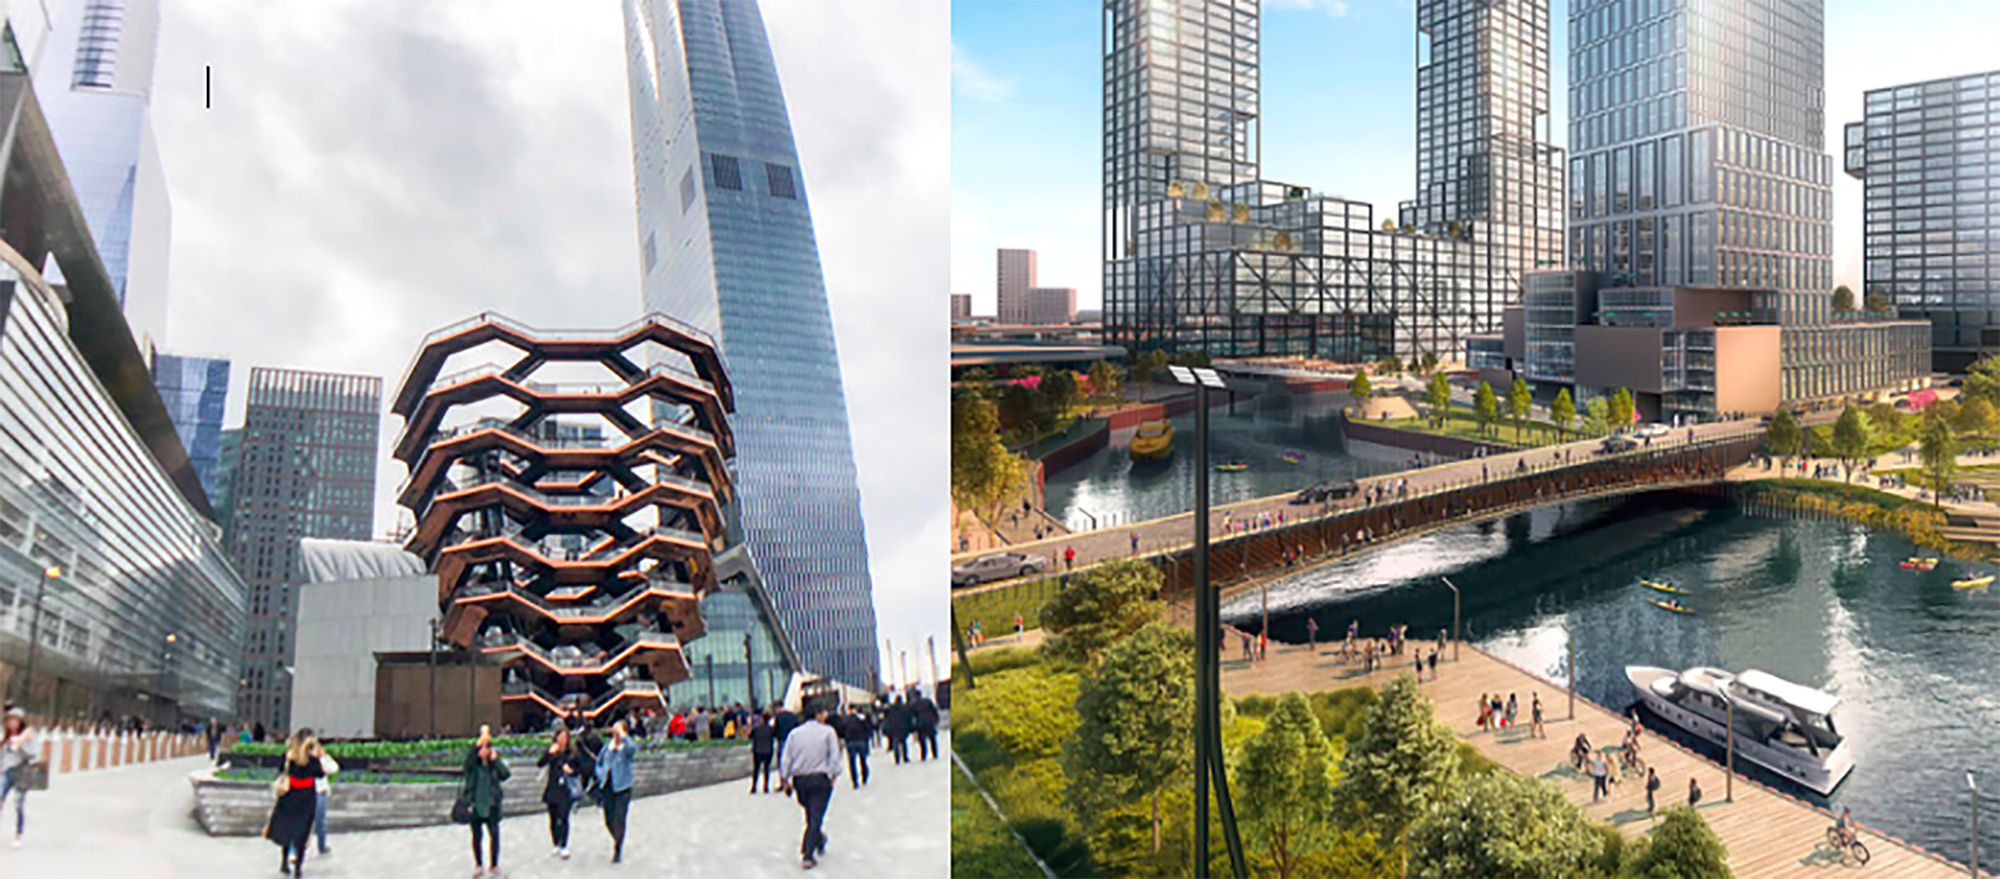 Hudson Yards vs Lincoln Yards